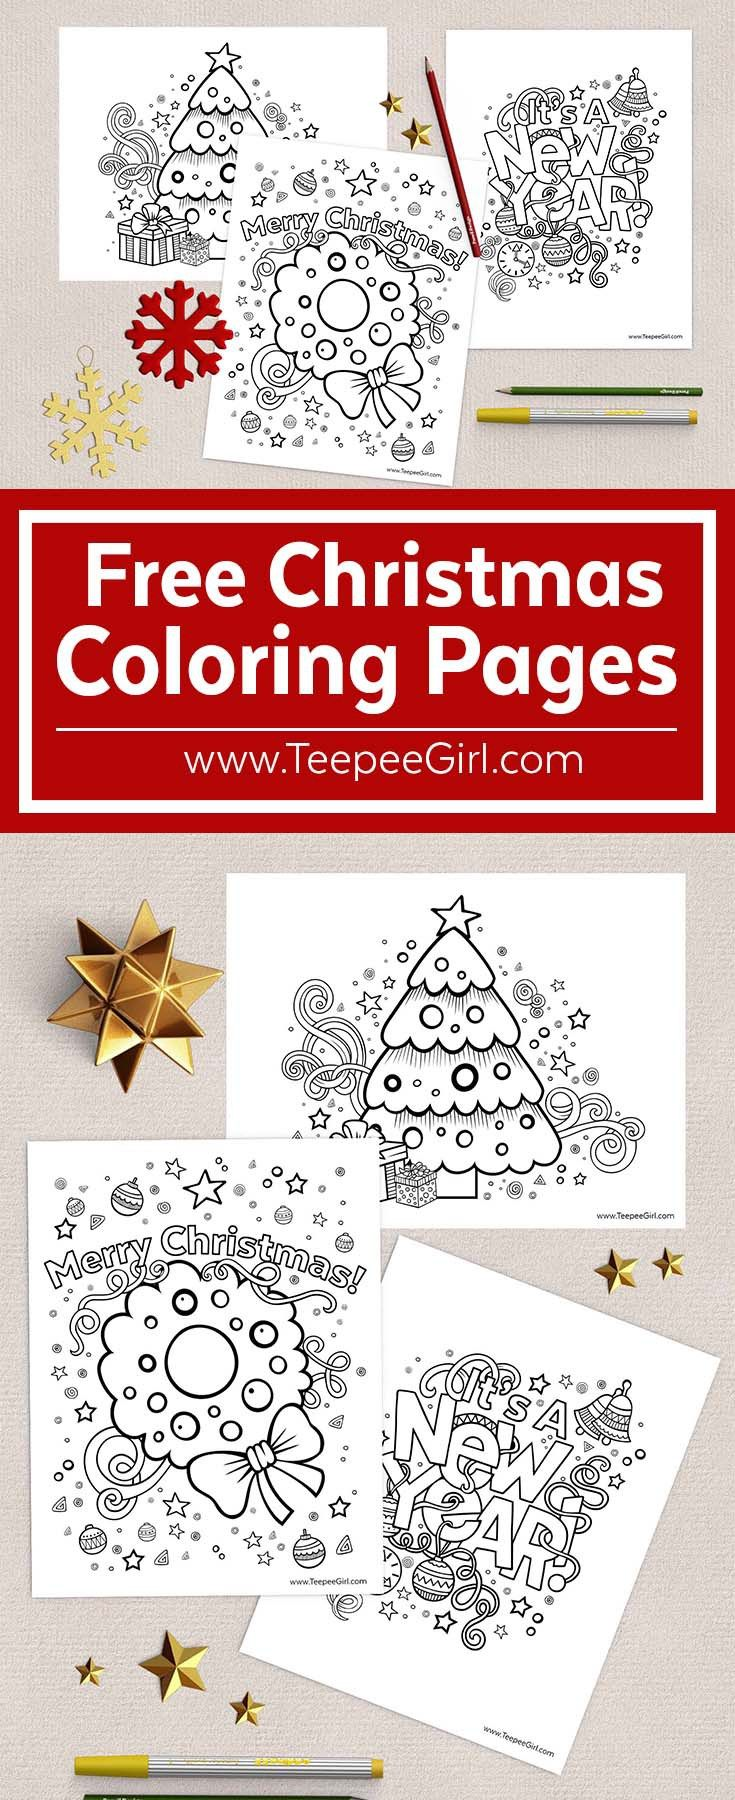 These free Christmas coloring pages are the perfect way to keep kids happy and busy during this holiday season!